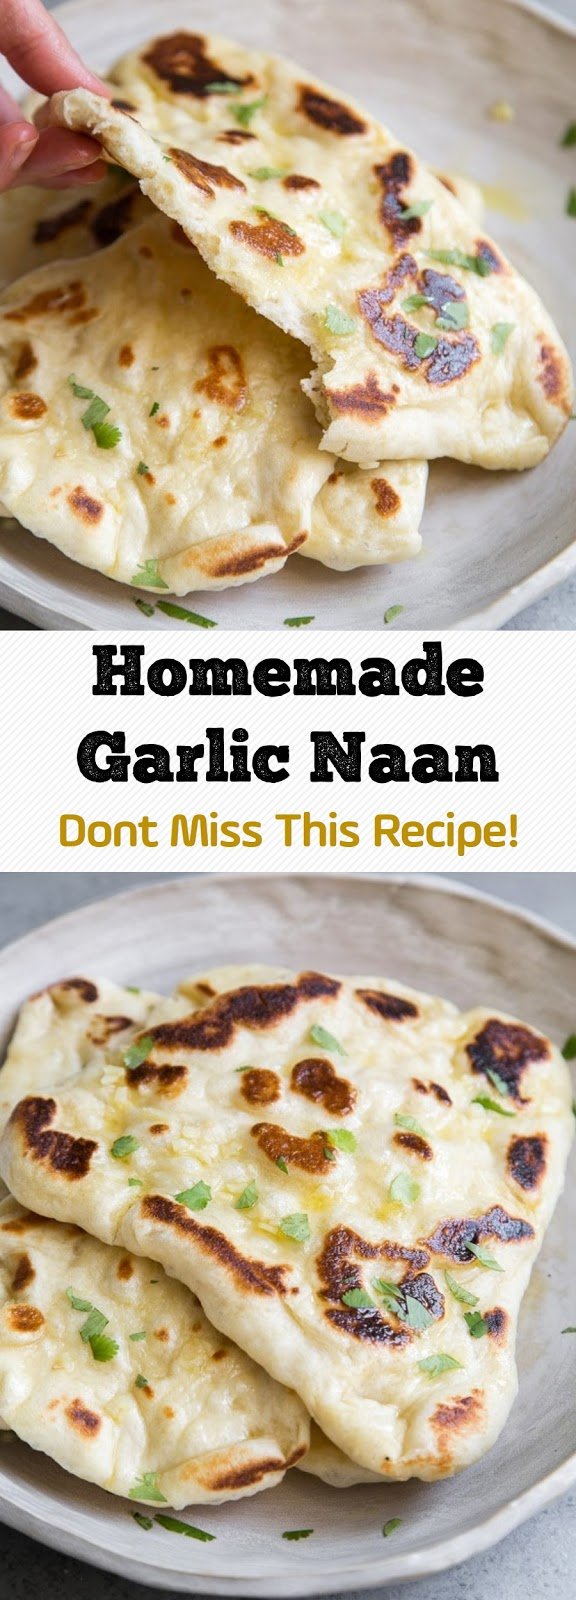 Homemade Garlic Naan - Dont Miss This Recipe!